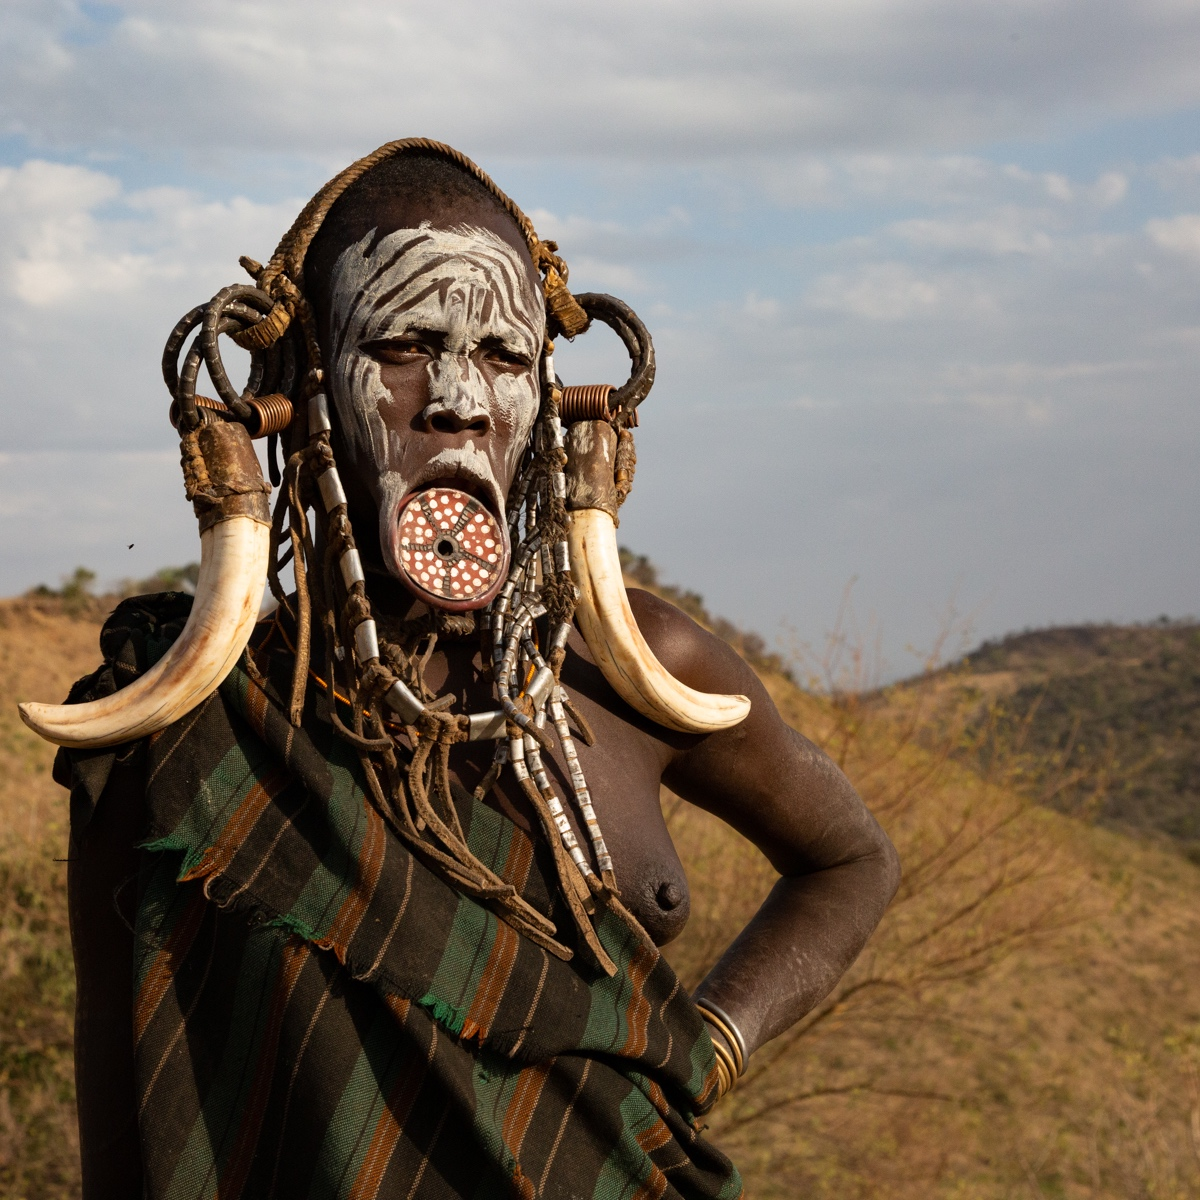 Best of Ethiopia: The Historic North and Omo Valley - 16 Days/15 NightsThis package was put together to give you 16 days and 15 nights of unforgettable experiences. Professional and experienced tour agents will make your stay comfortable and memorable.The ethnographic museum, the mercato, trinity cathedral, the royal enclosure, and the rock hewn churches are few of the beautiful and memorable sites you will get to visit and experience with this amazing package.$2,800NEXT GROUP TOURS!October 1st - November 1st - December 1st